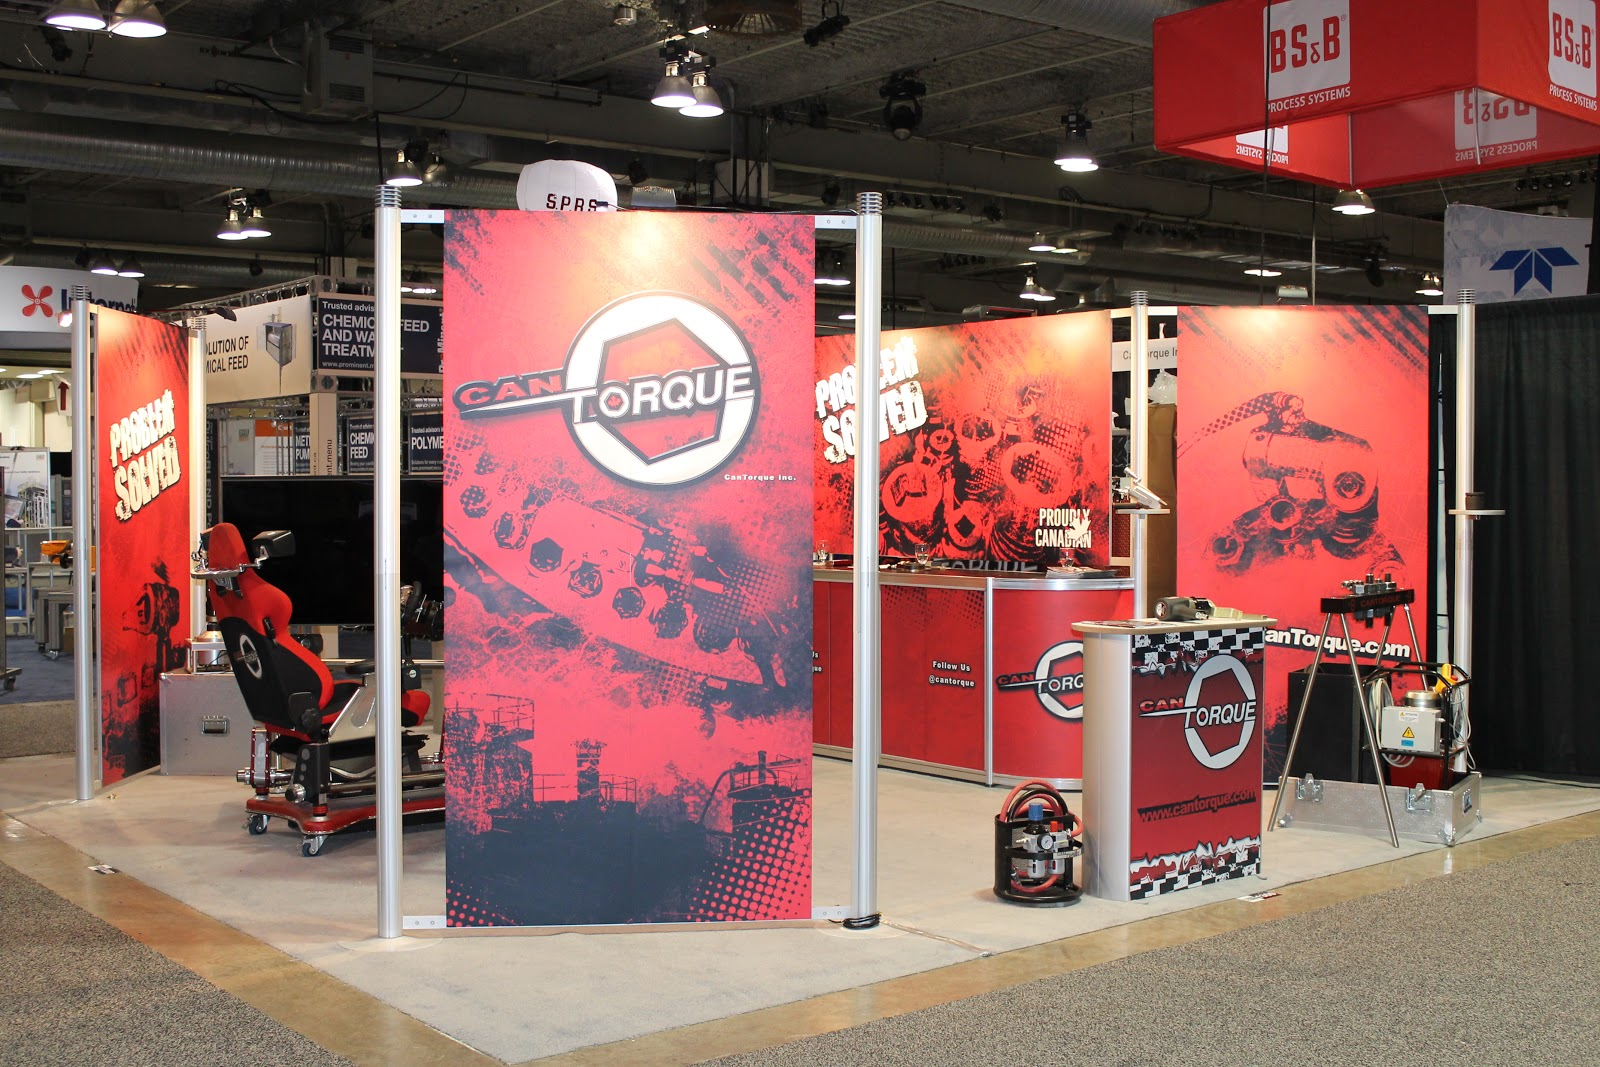 20' x 20' Octanorm Exhibit for CanTorque